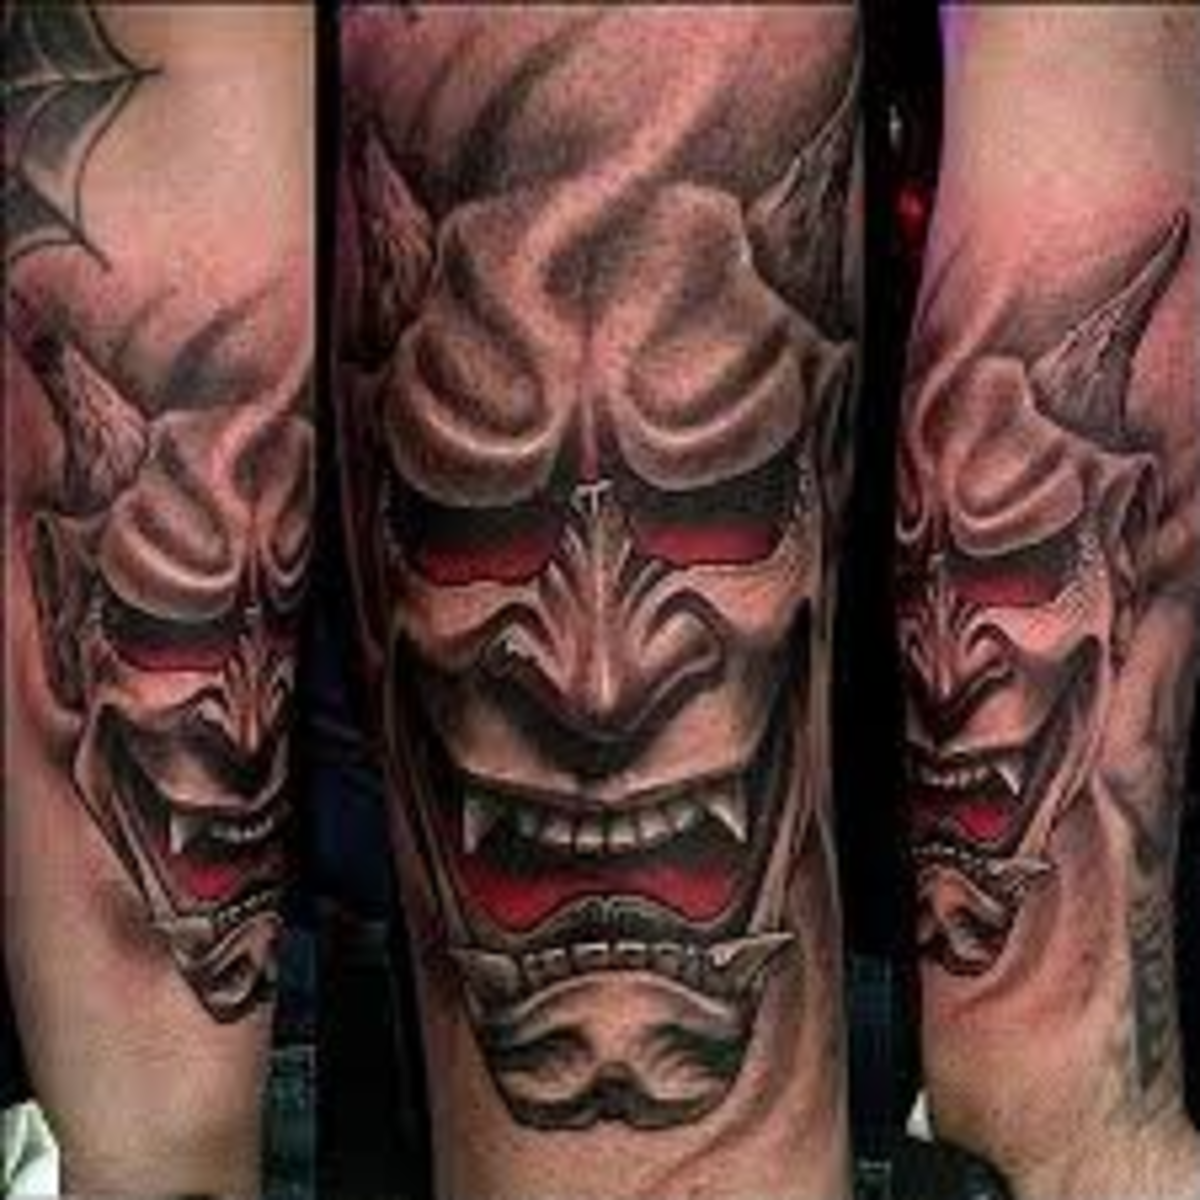 This hannya tattoo has a devilish appearance.